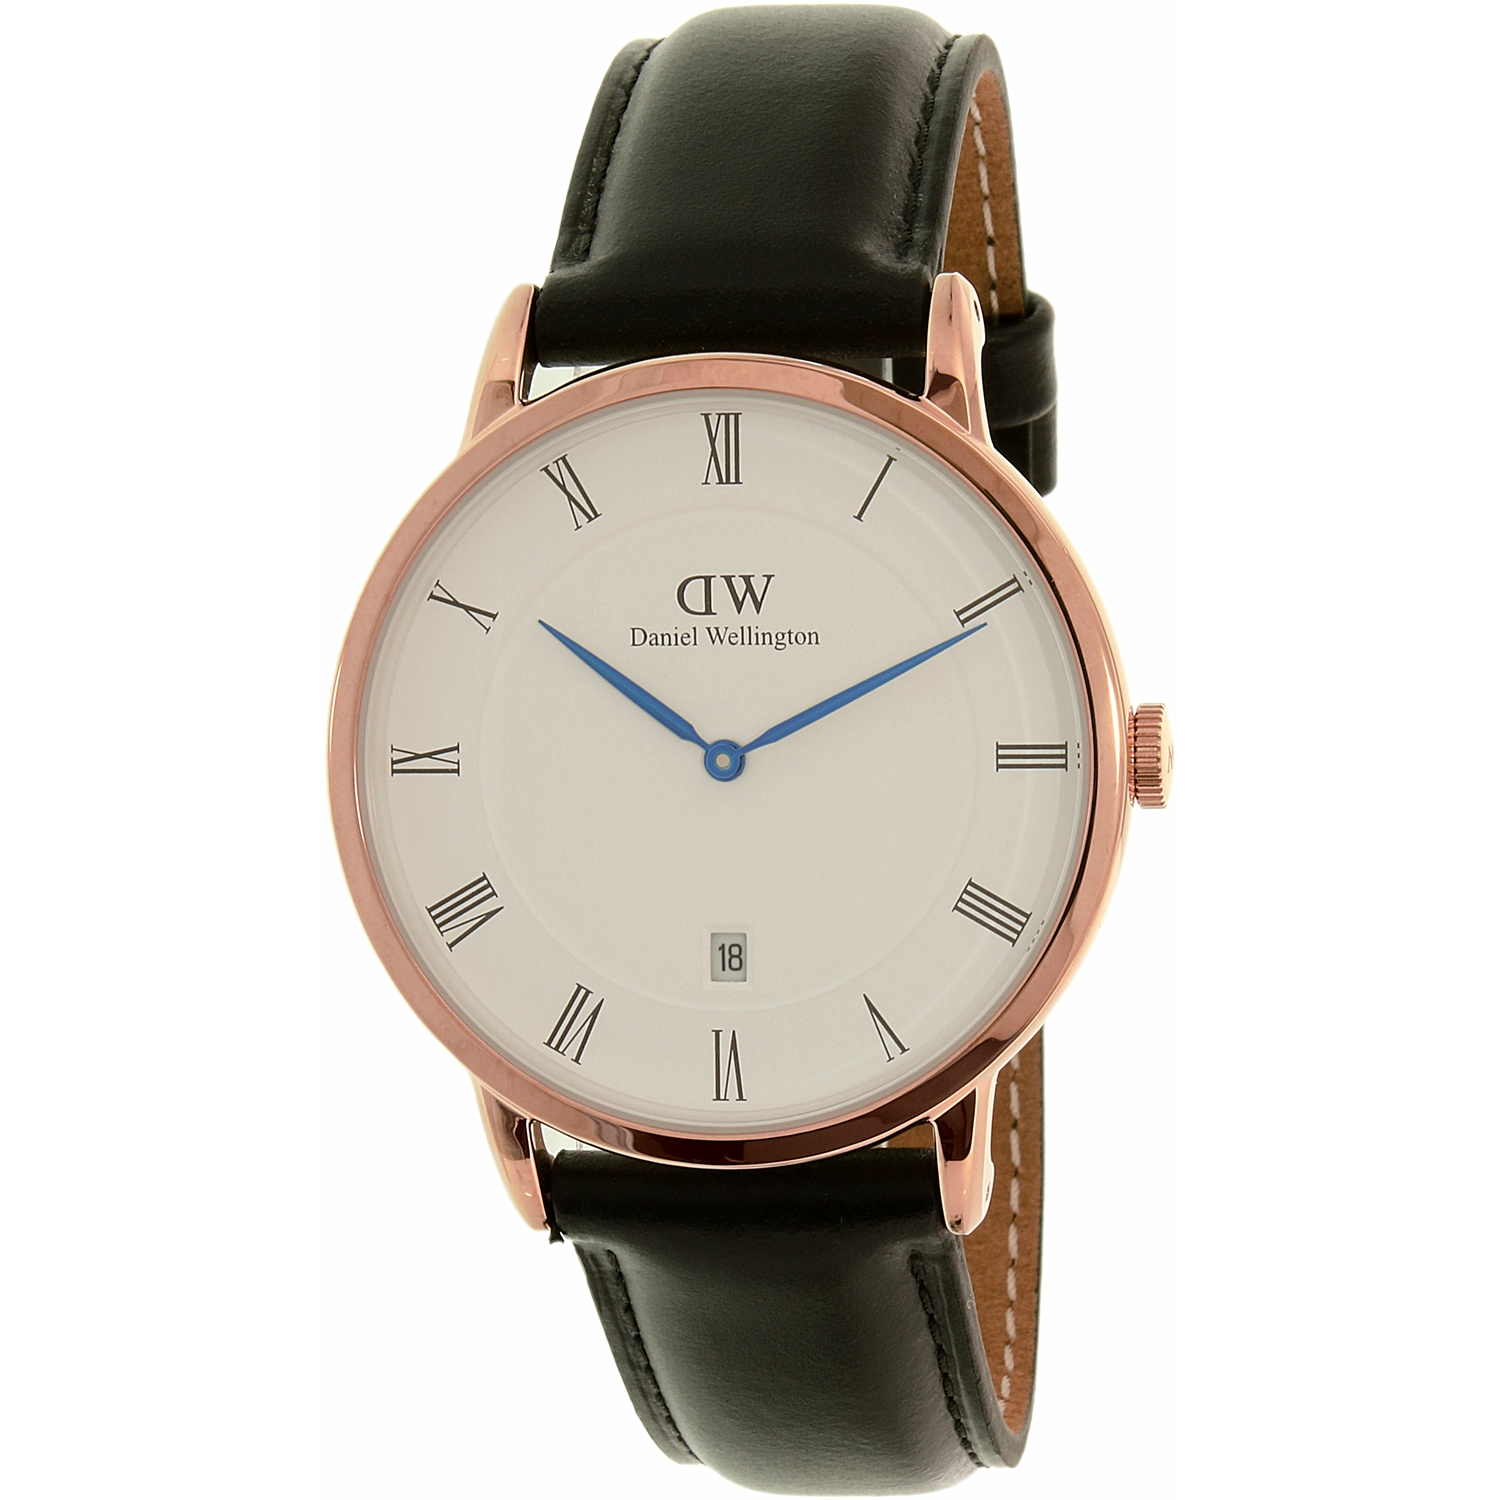 Daniel Wellington Men's Dapper Watch Quartz Mineral Crystal 1101DW